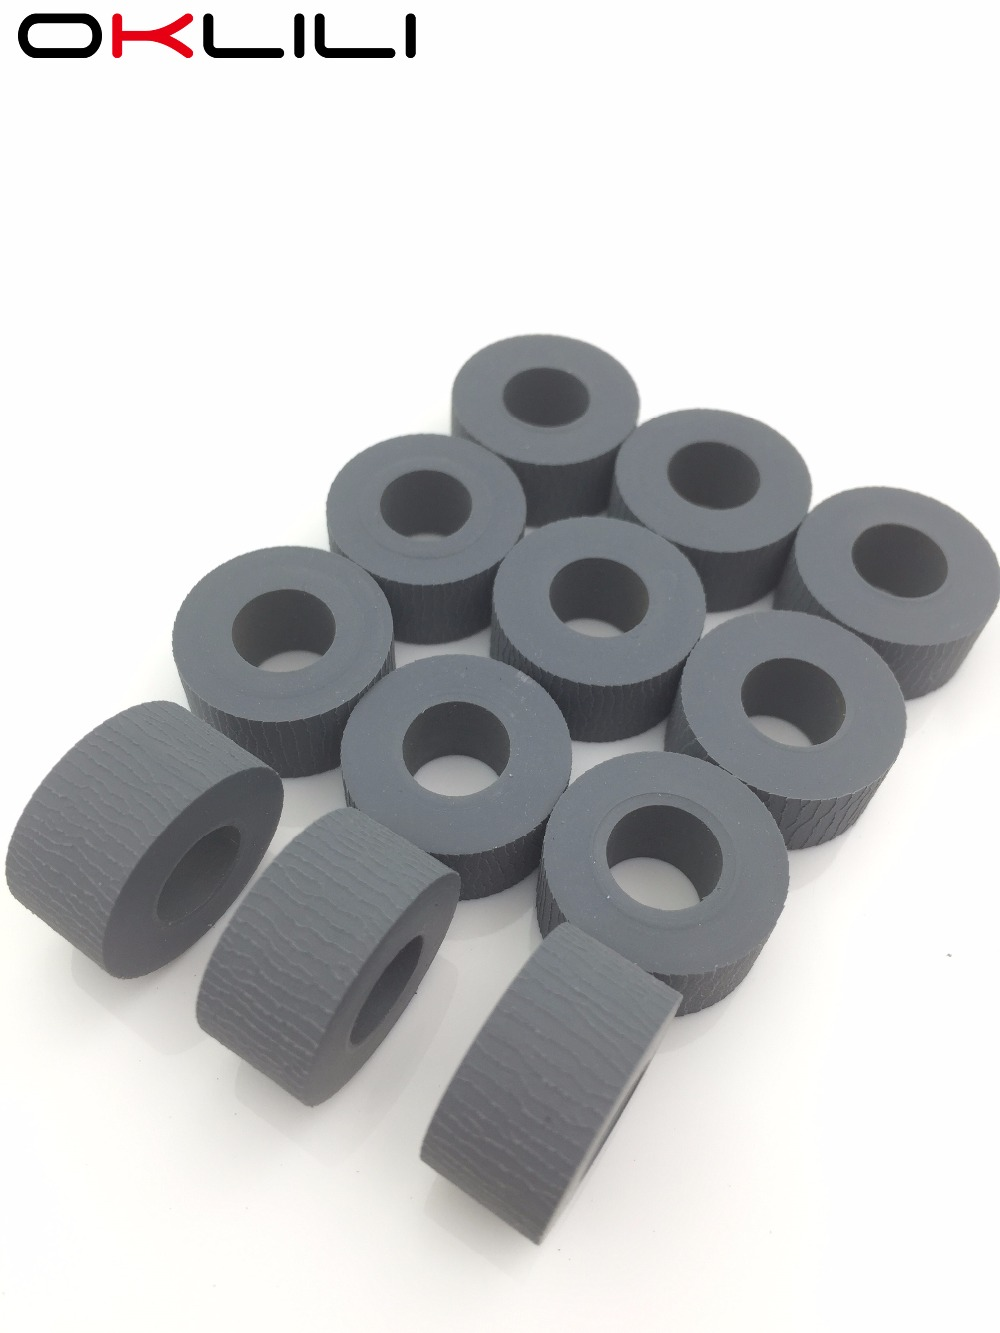 Paper Feed Pickup Roller tire for OKI B6200 B6200N B6250N B6300 B6300N B6500 B6500N B710DN B710 for Xerox 4500 4510 7100DN 7100N pickup roller feed roller separation roller for epson r200 r210 r220 r230 r310 r350